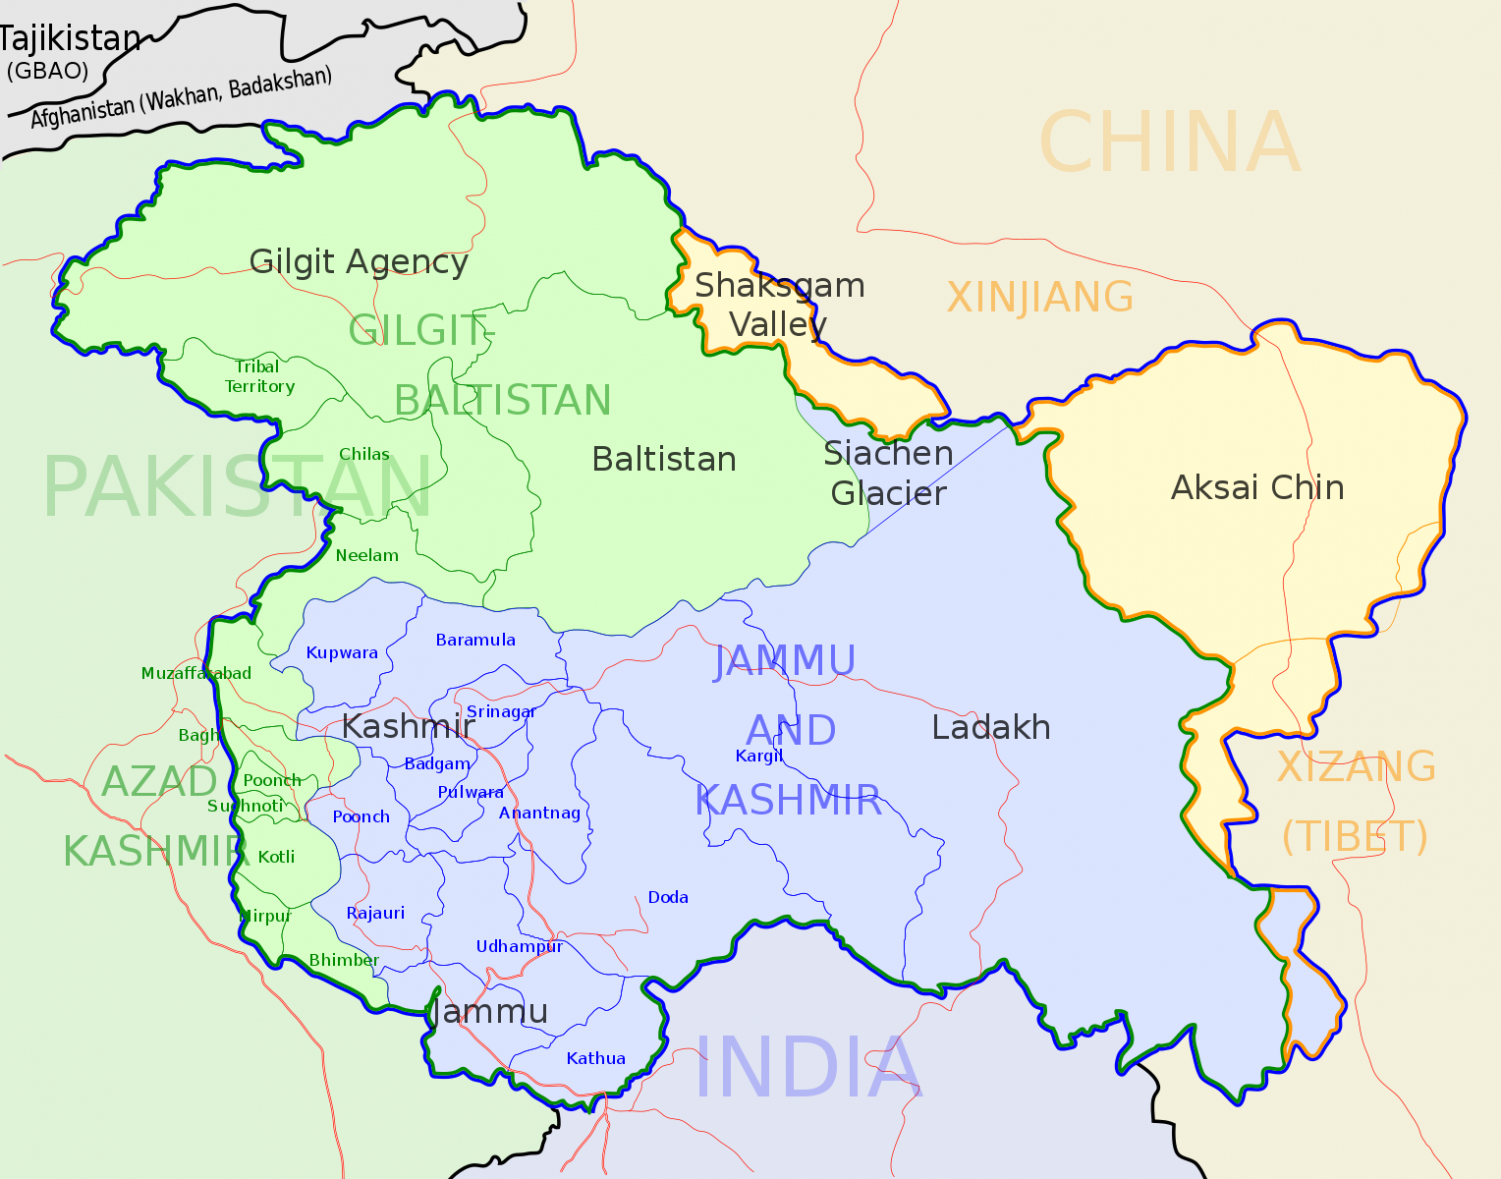 Kashmir is a highly disputed area between Pakistan and India.